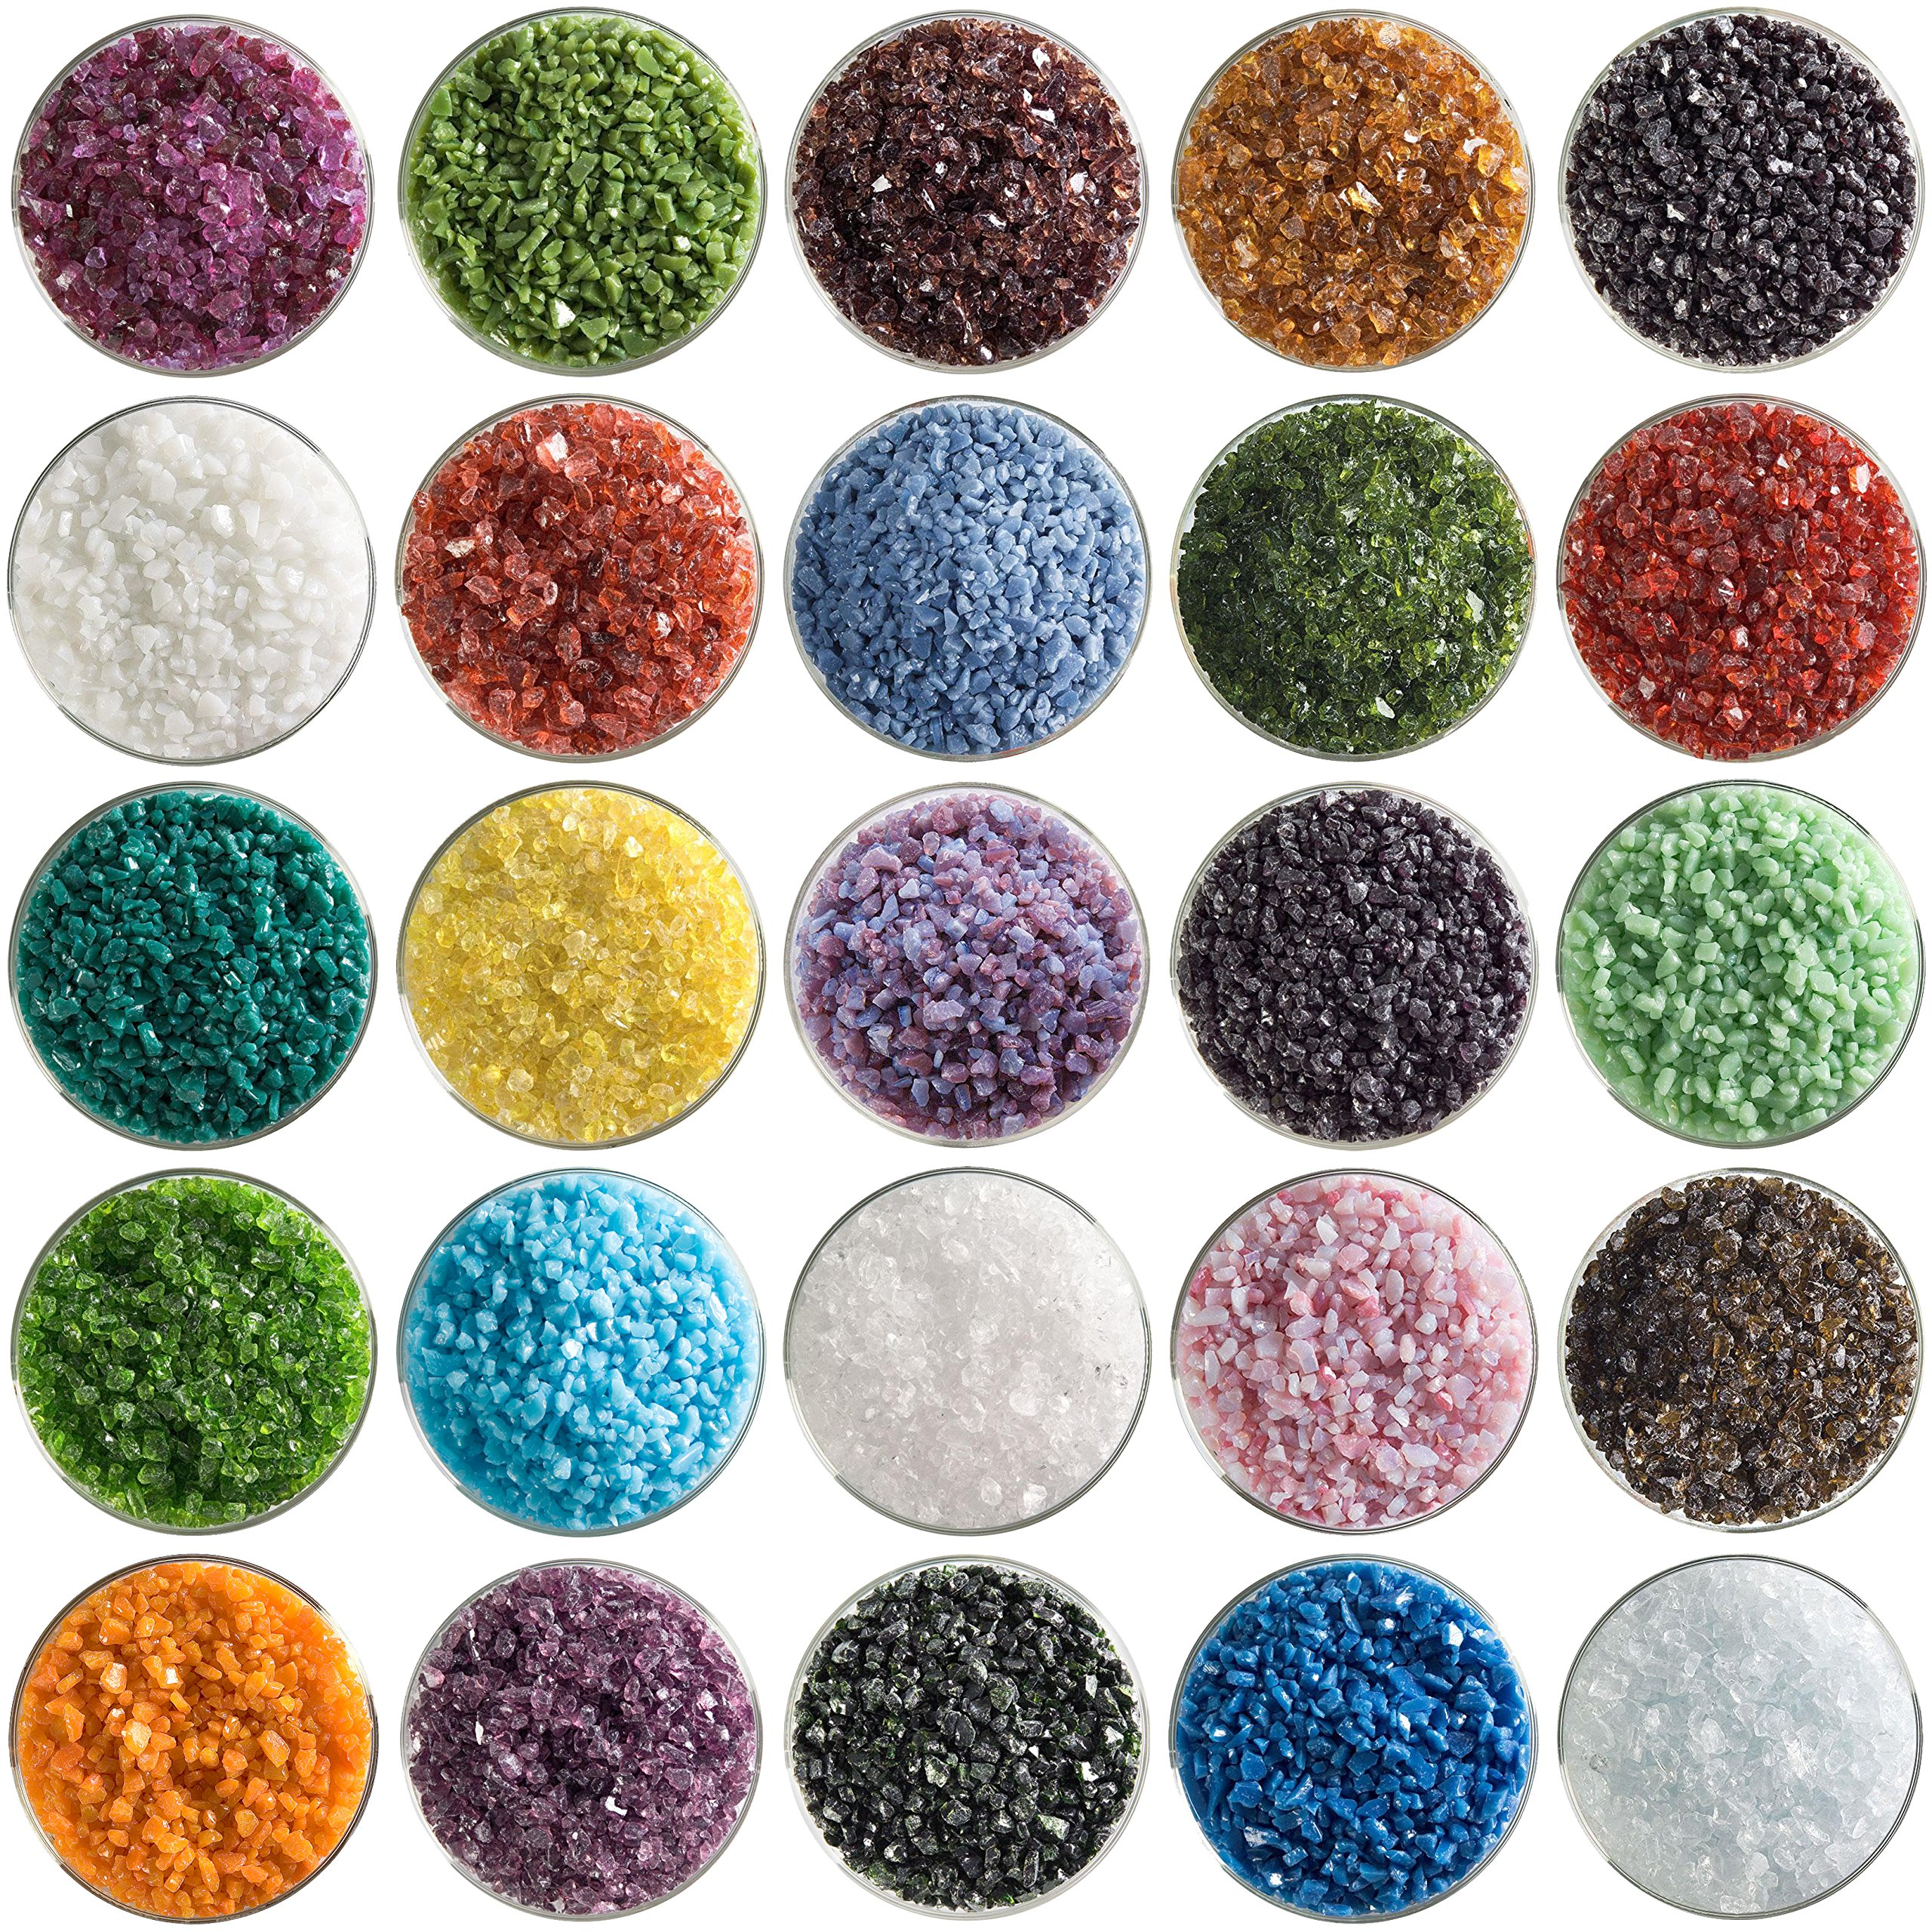 Super Mega Fusible Glass Coarse Frit Sampler Pack Number 1 - 25 Colors, 90 COE - Made From Bullseye Glass by New Hampshire Craftworks